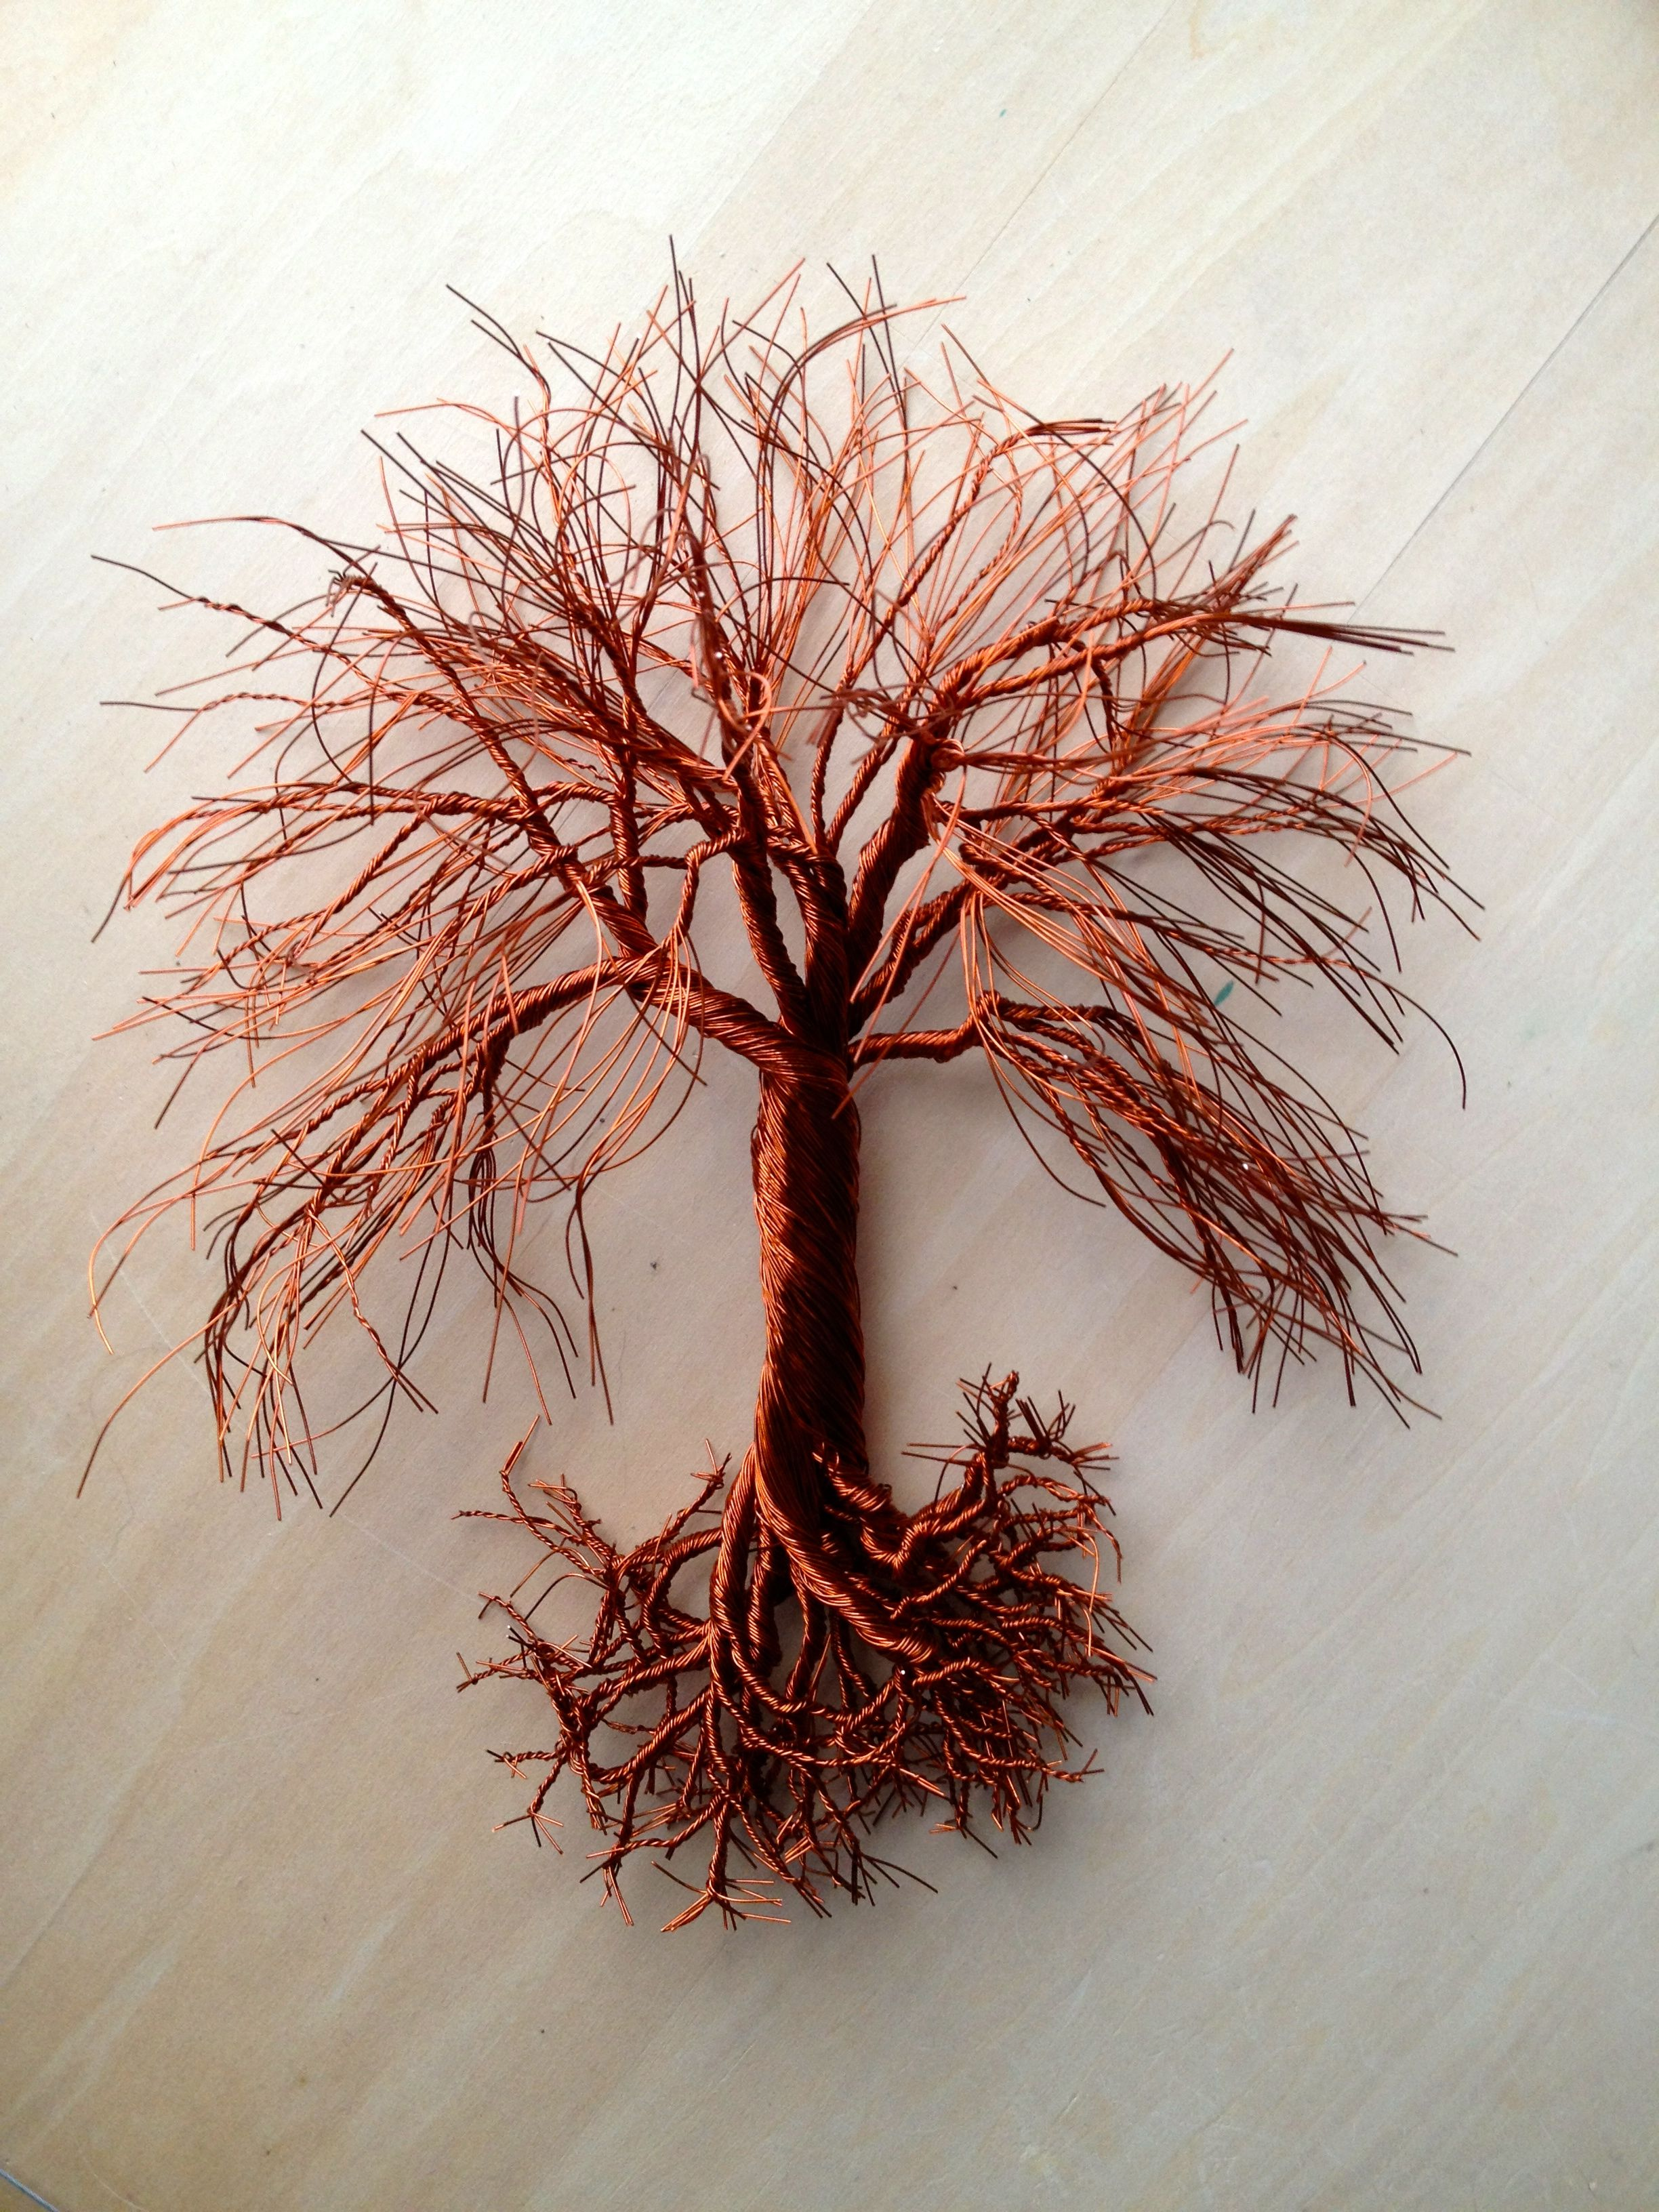 Small 8 Quot Hanging Copper Wire Tree Art For Sale 65 00 Www